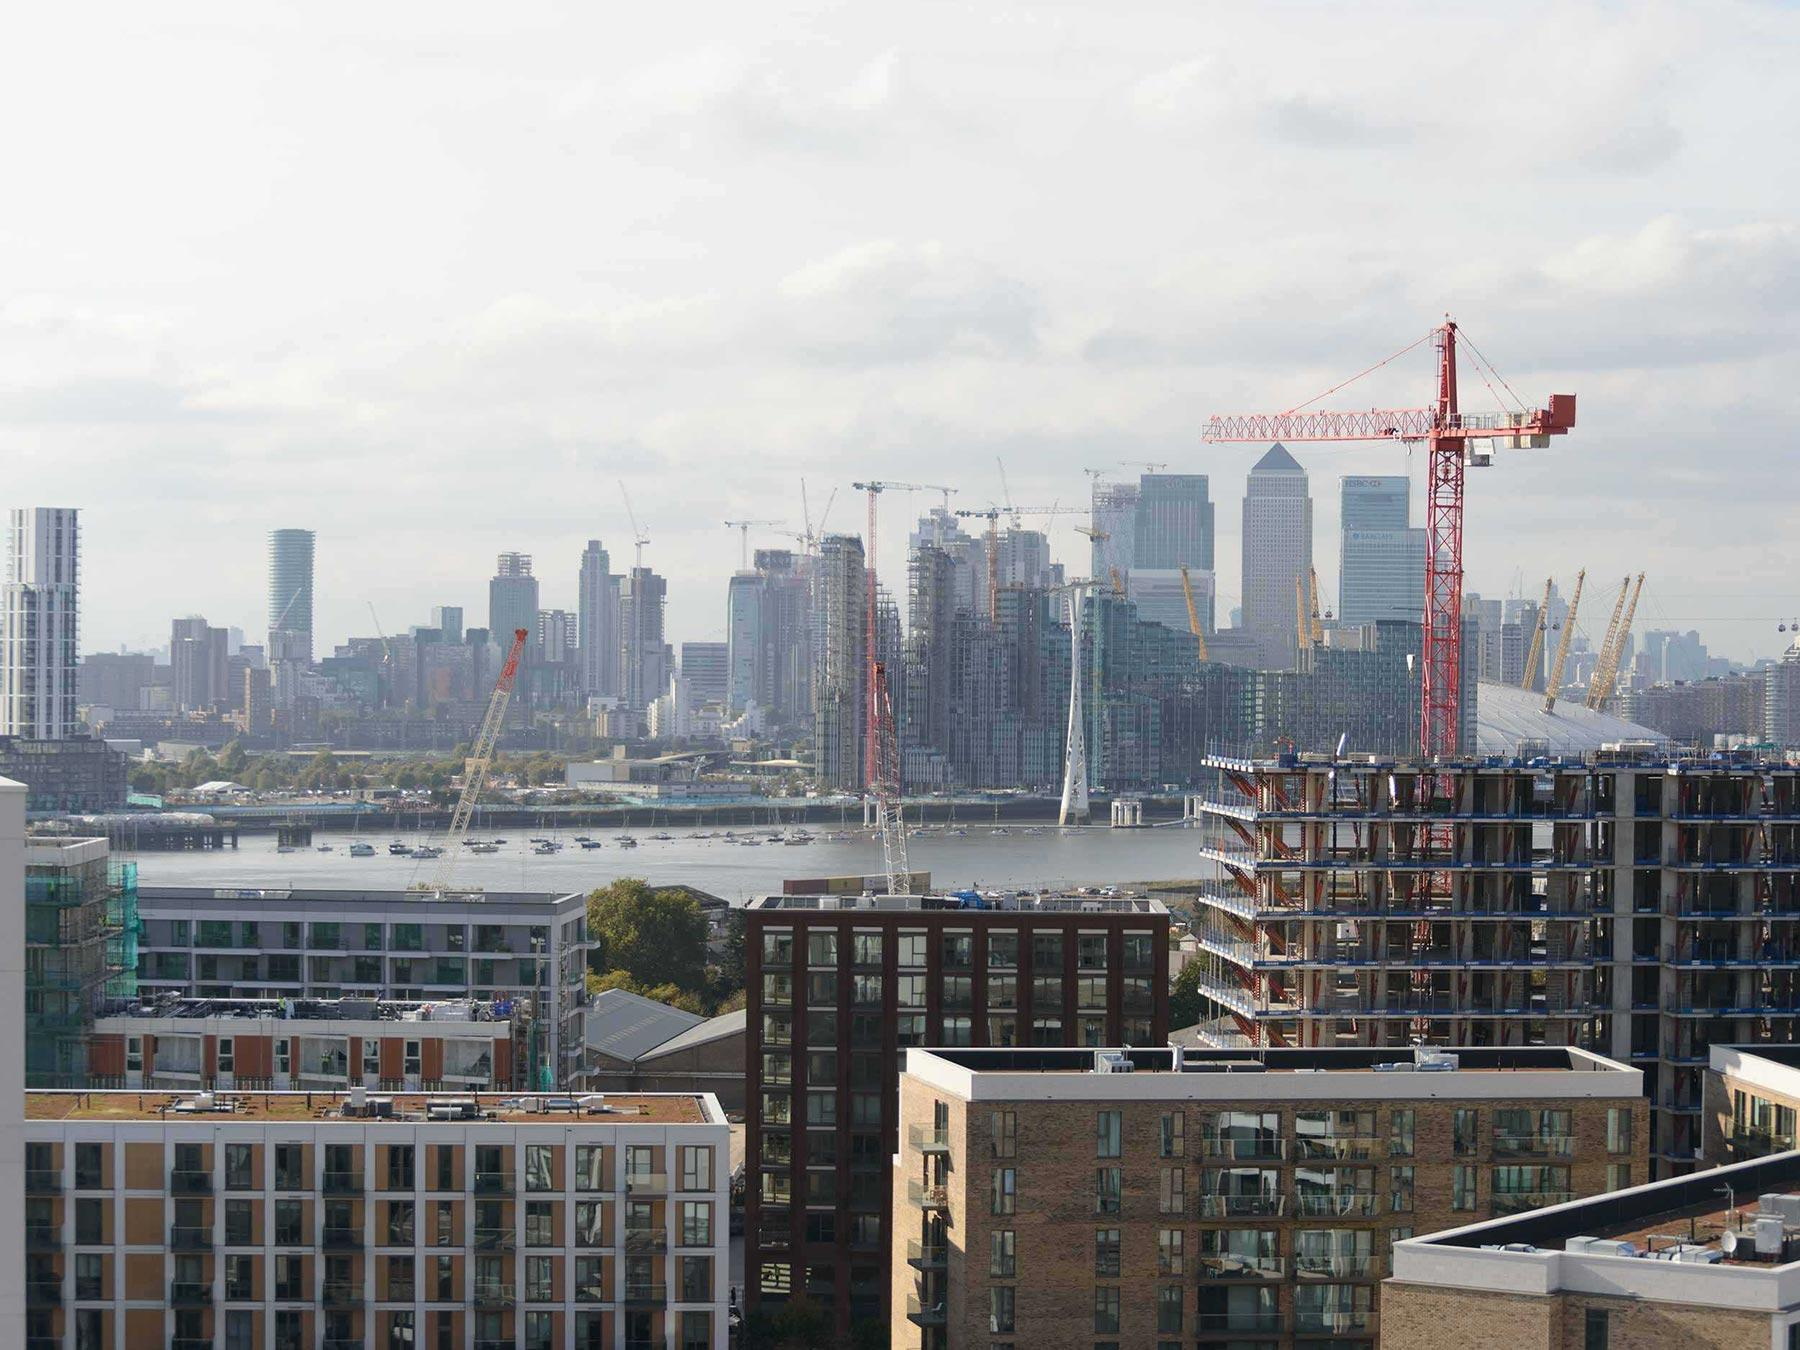 Modern day scene of buildings, cranes and the Canary Wharf skyline in the distance